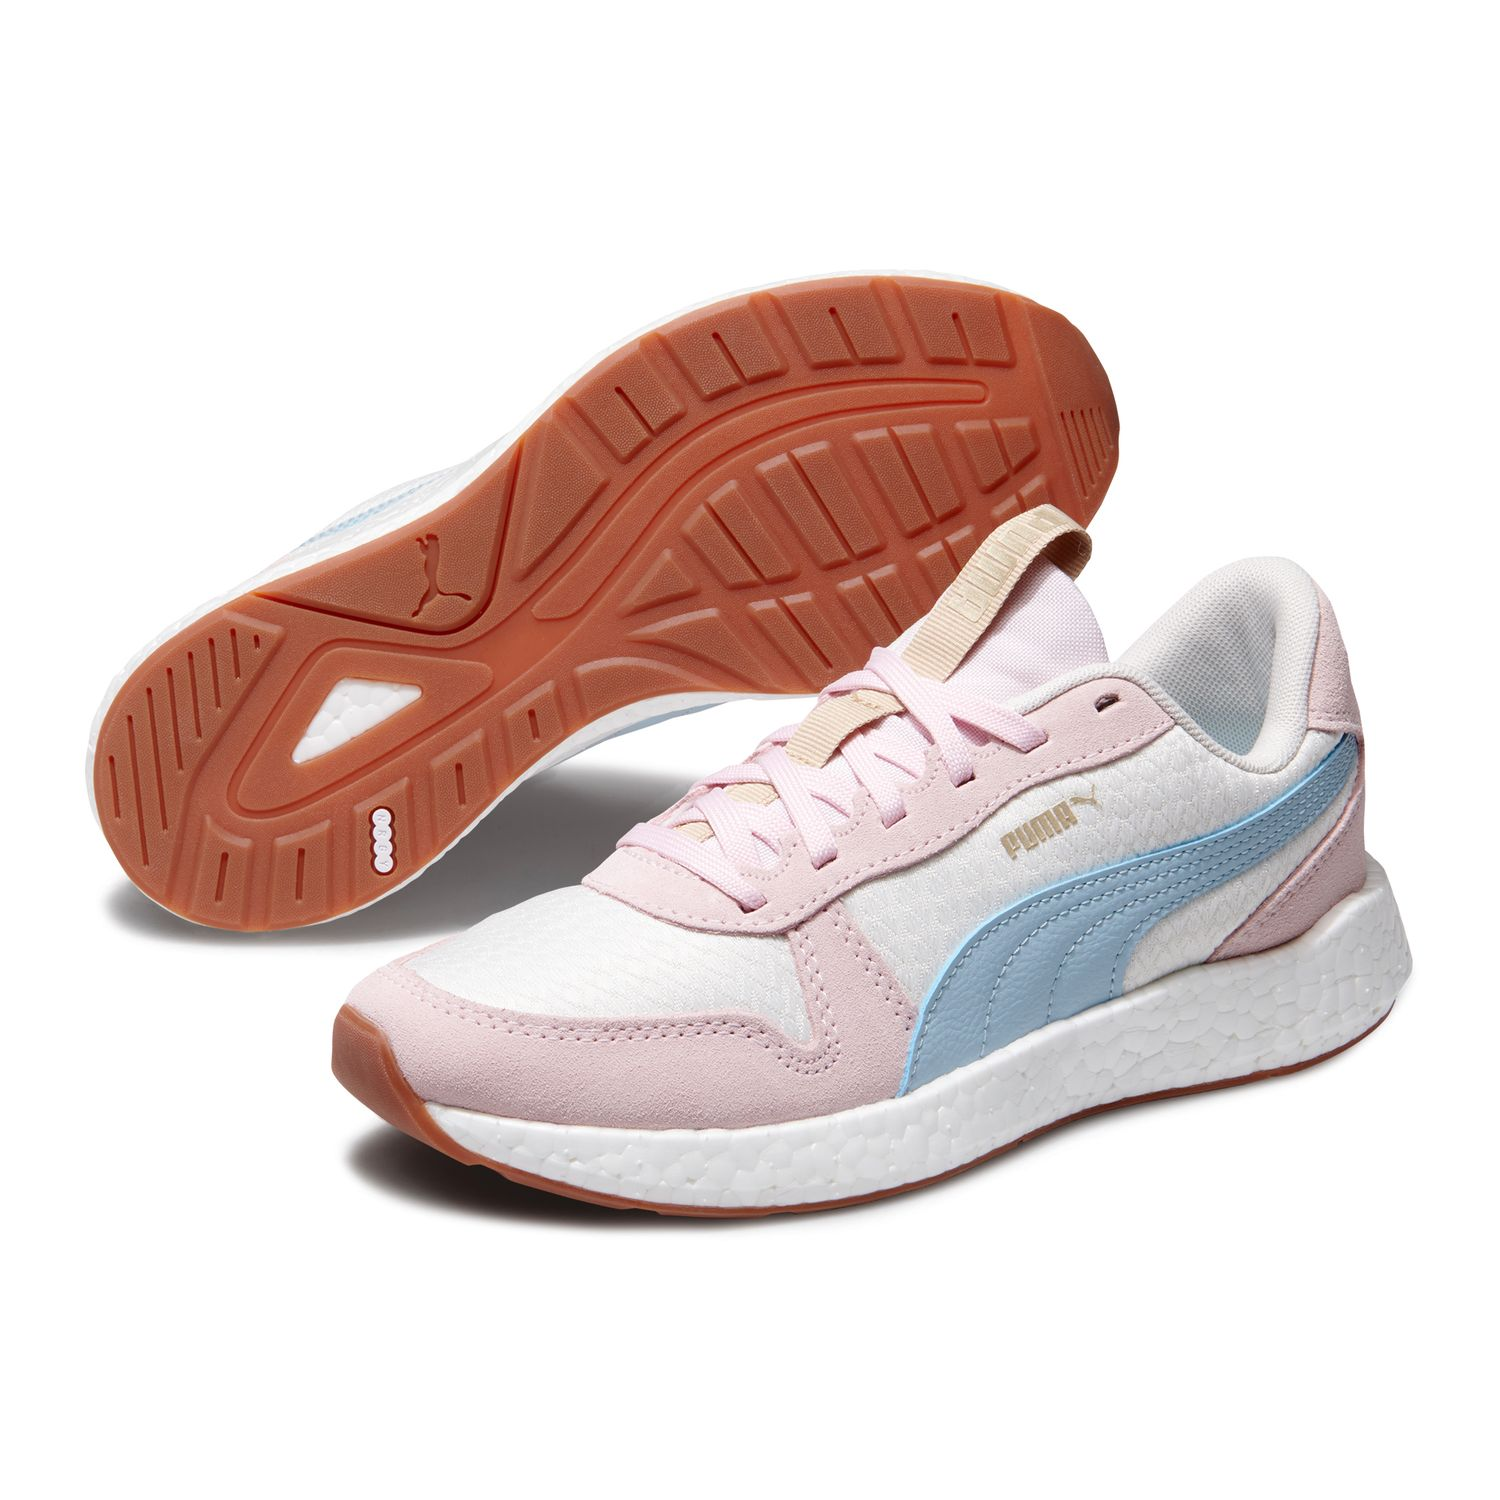 39e5b0ff Details about Puma Nrgy Neko Retro Sweet What Vintage Fitness Shoes 192748  Ladies Whisper